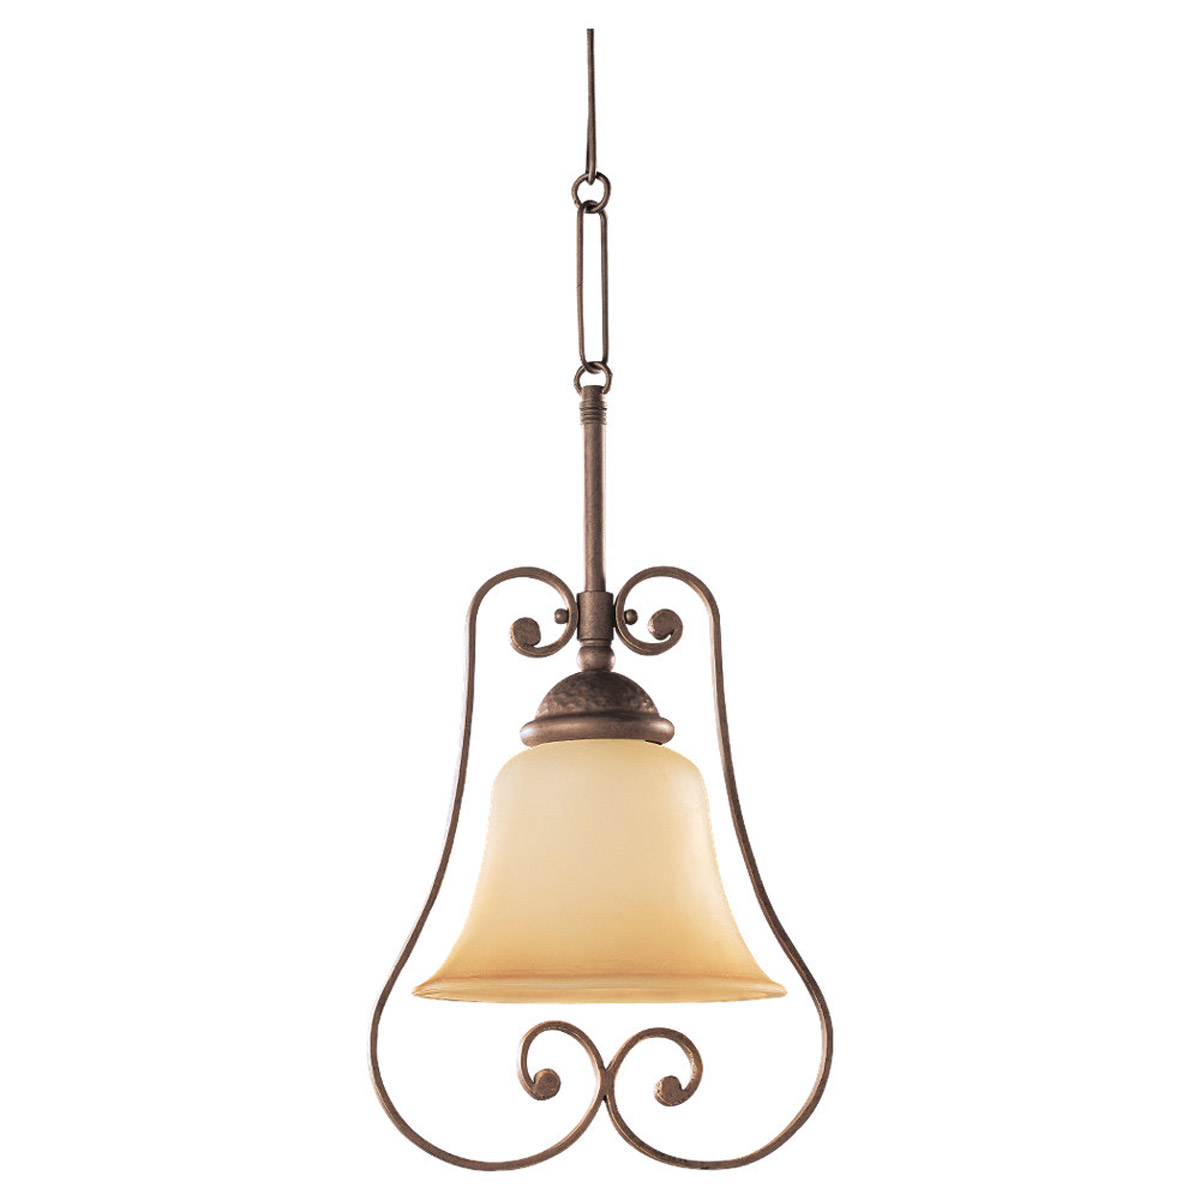 Sea Gull Lighting Brandywine 1 Light Mini Pendant in Antique Bronze 61430-71 photo